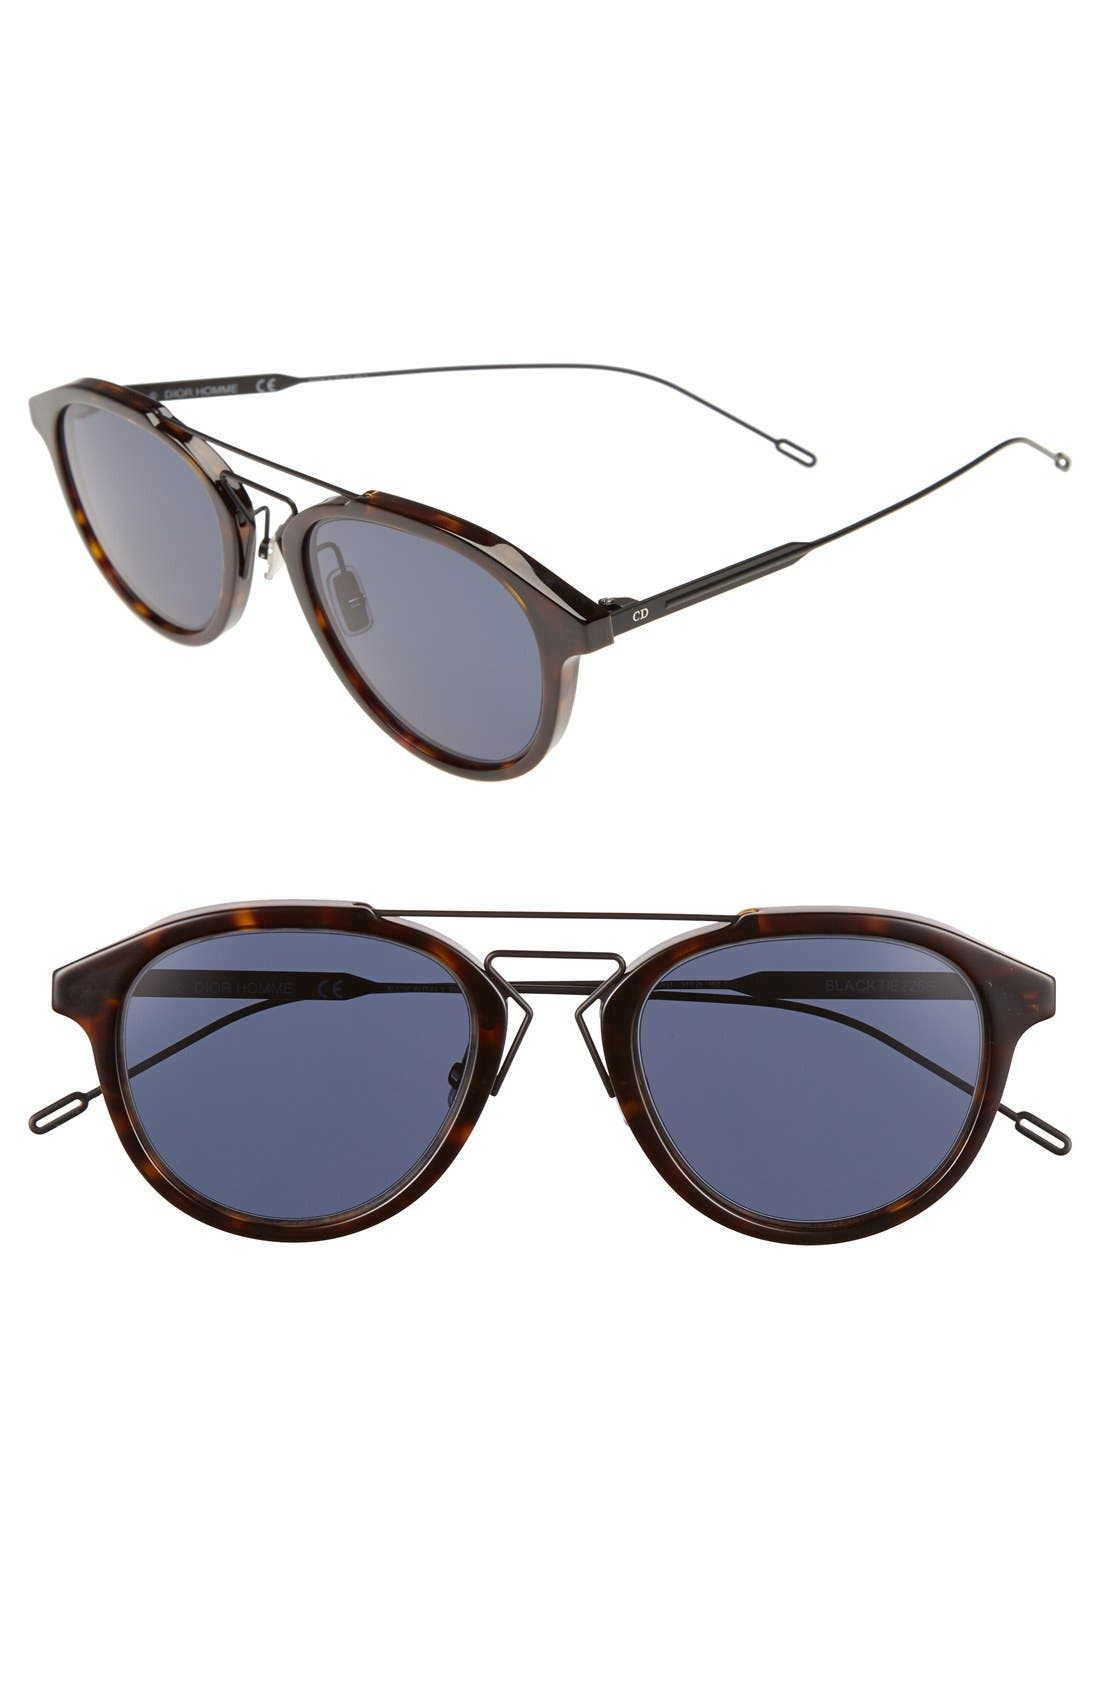 52mm 'Black Tie' Sunglasses,                         Main,                         color, Havana